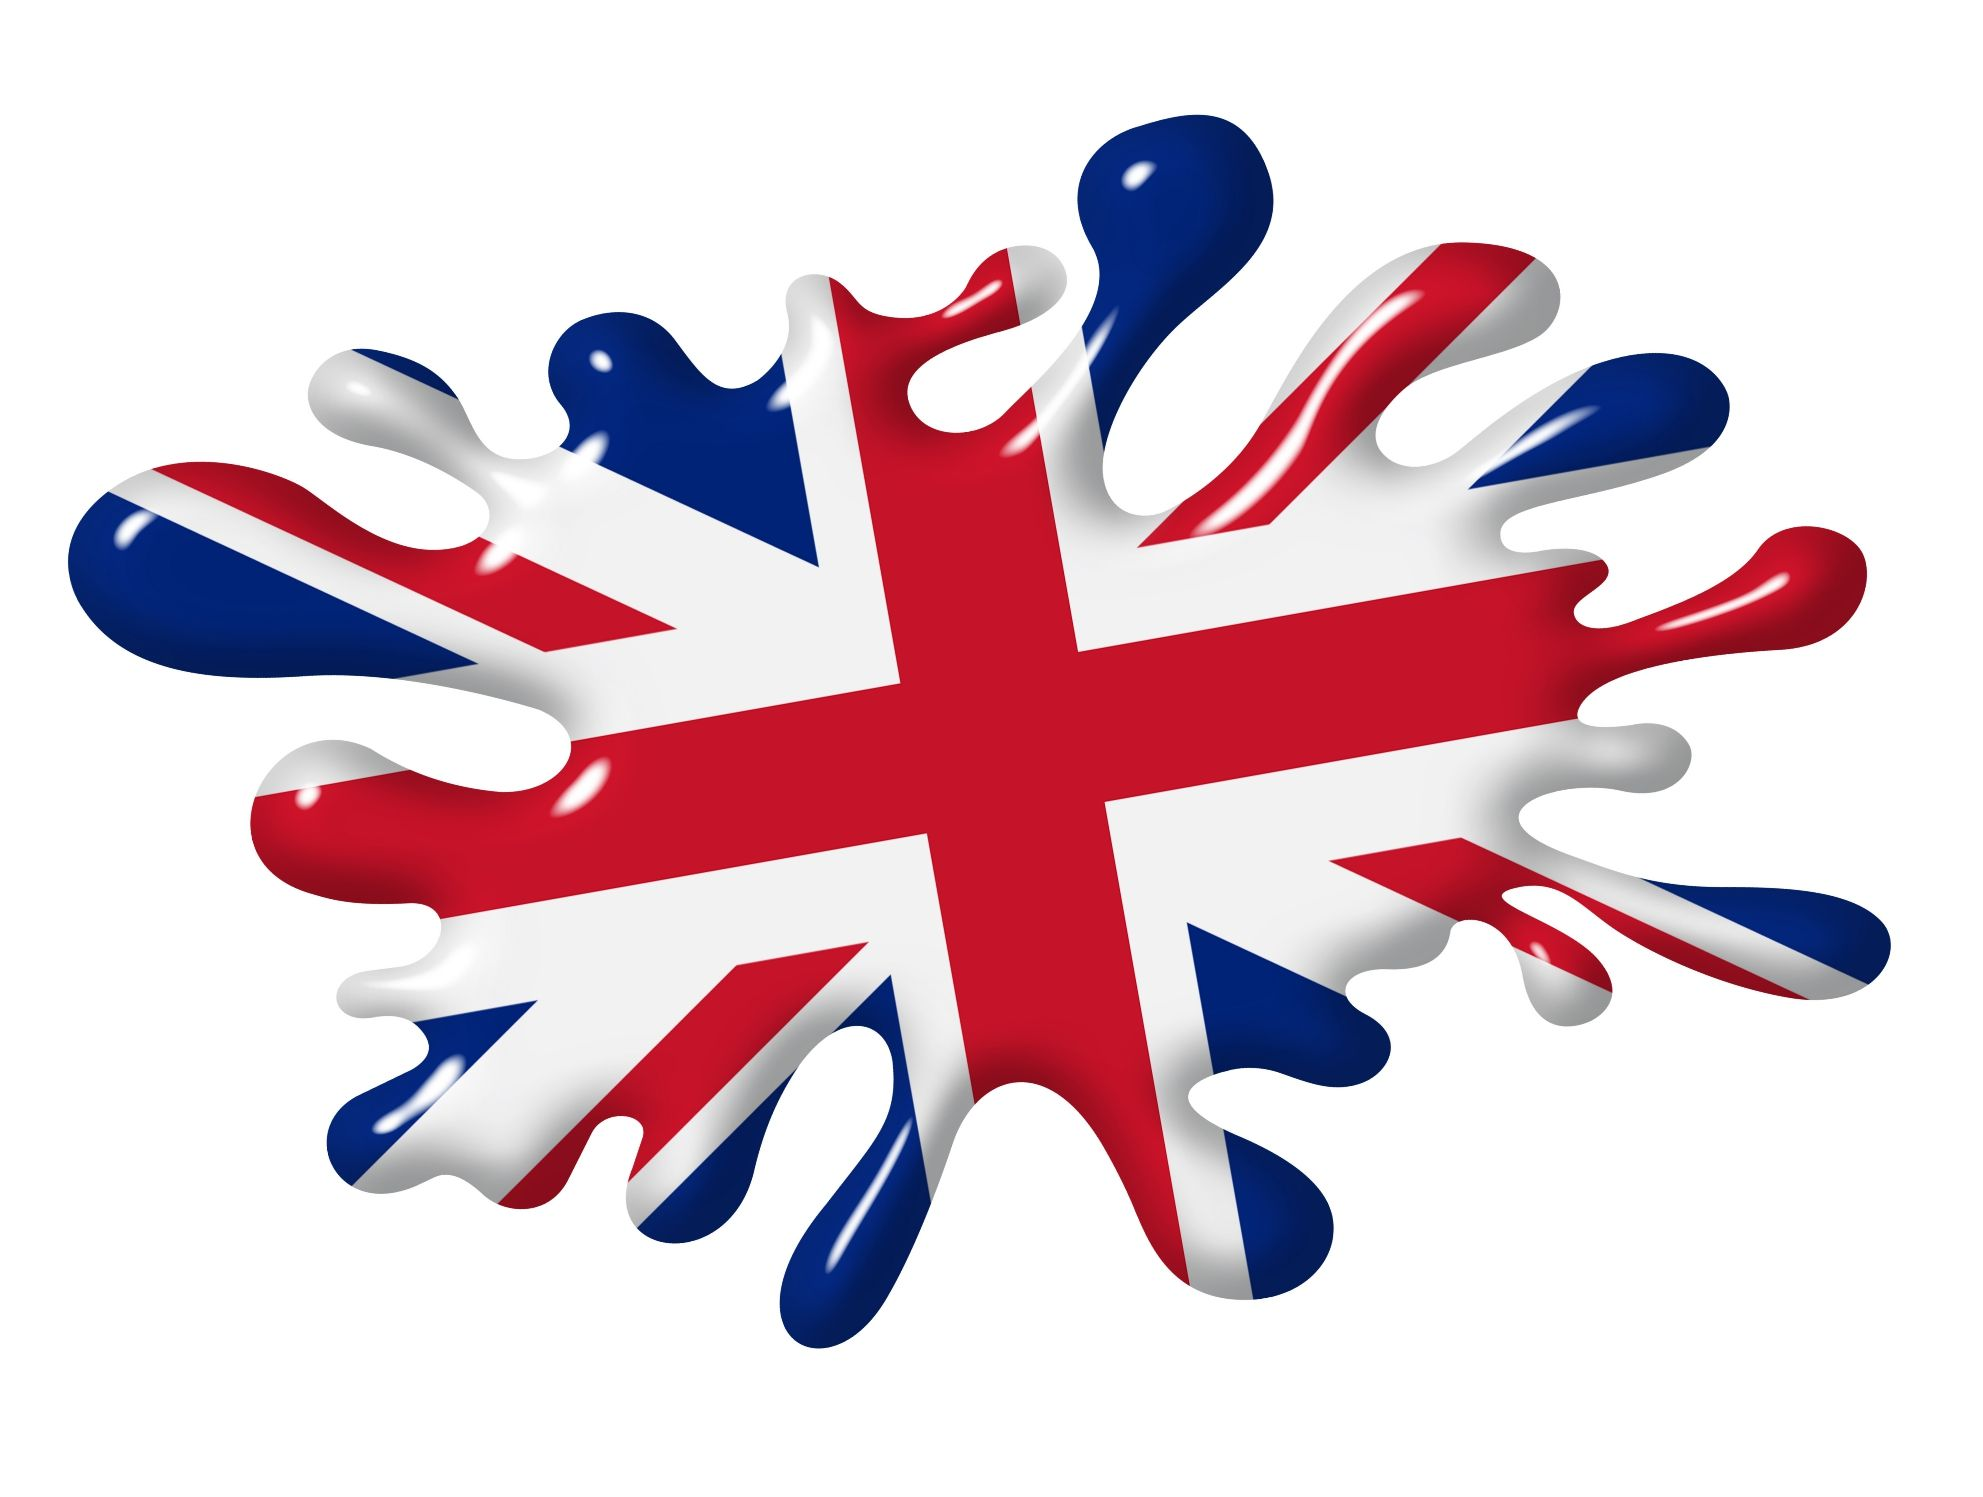 Car sticker designs images - 3d Shaded Effect Splat Design With Union Jack British Flag Motif External Vinyl Car Sticker 100x150mm